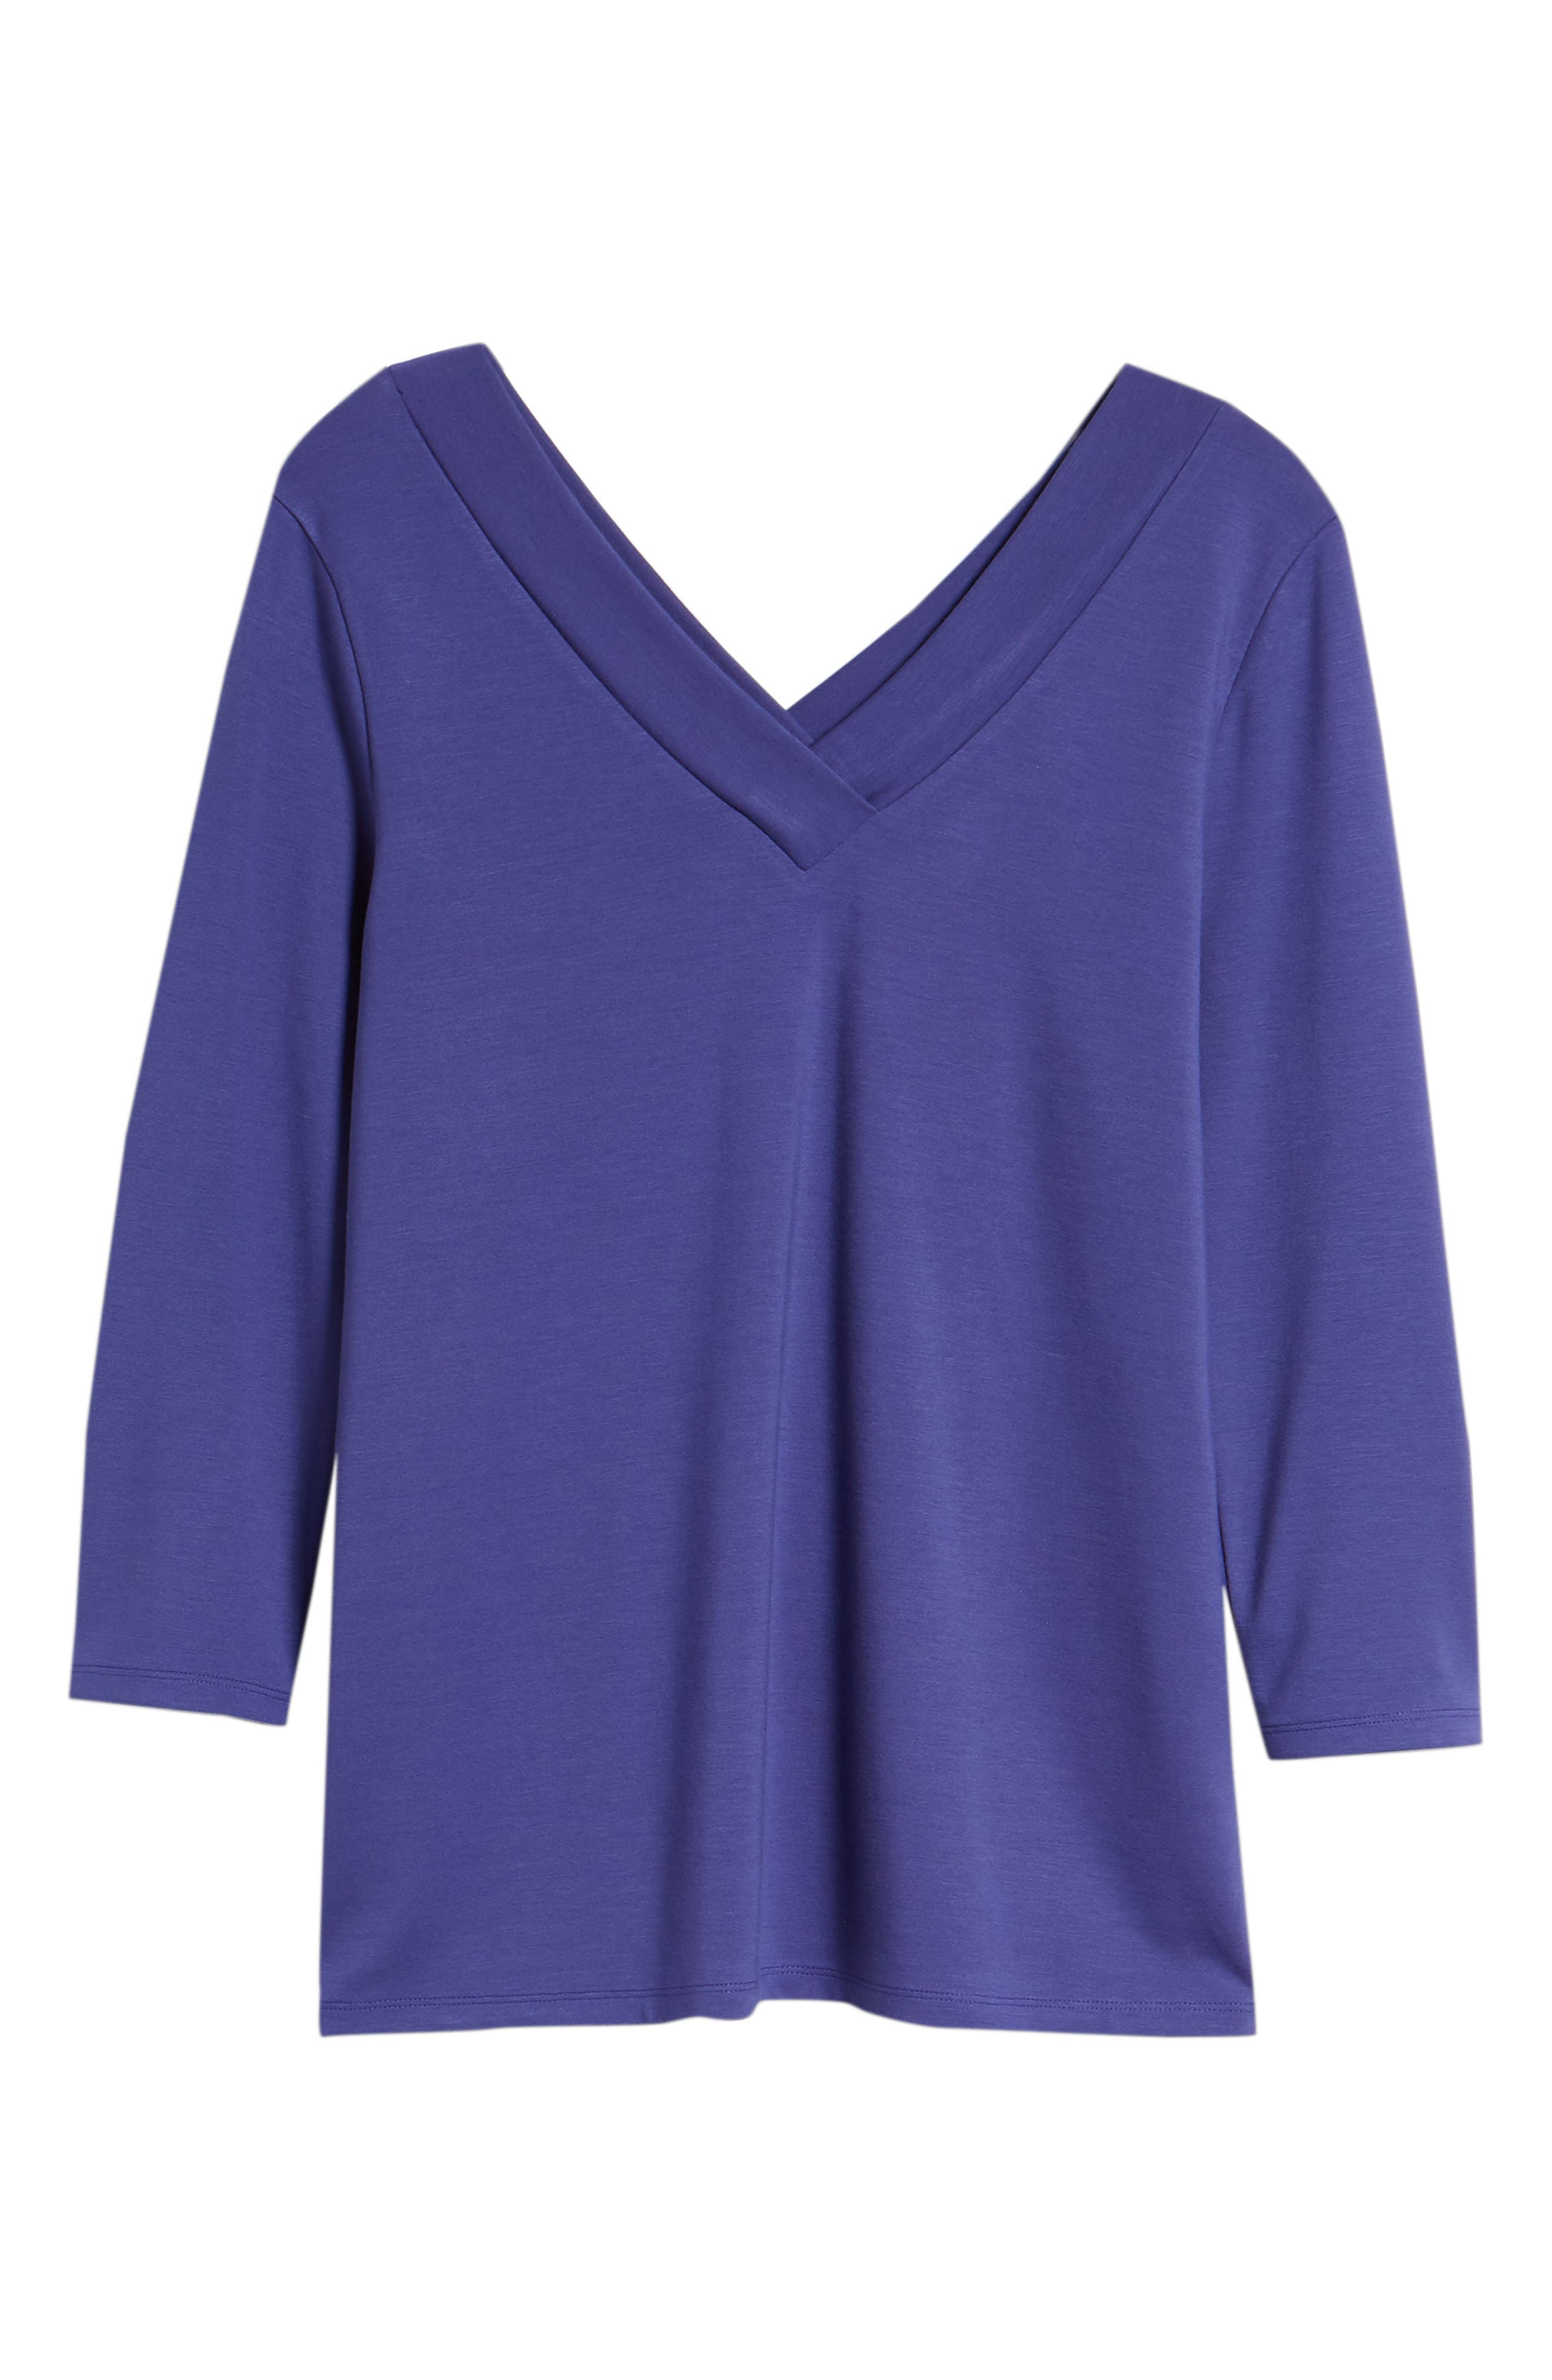 V-Neck Tee,                             Alternate thumbnail 7, color,                             Purple Orient